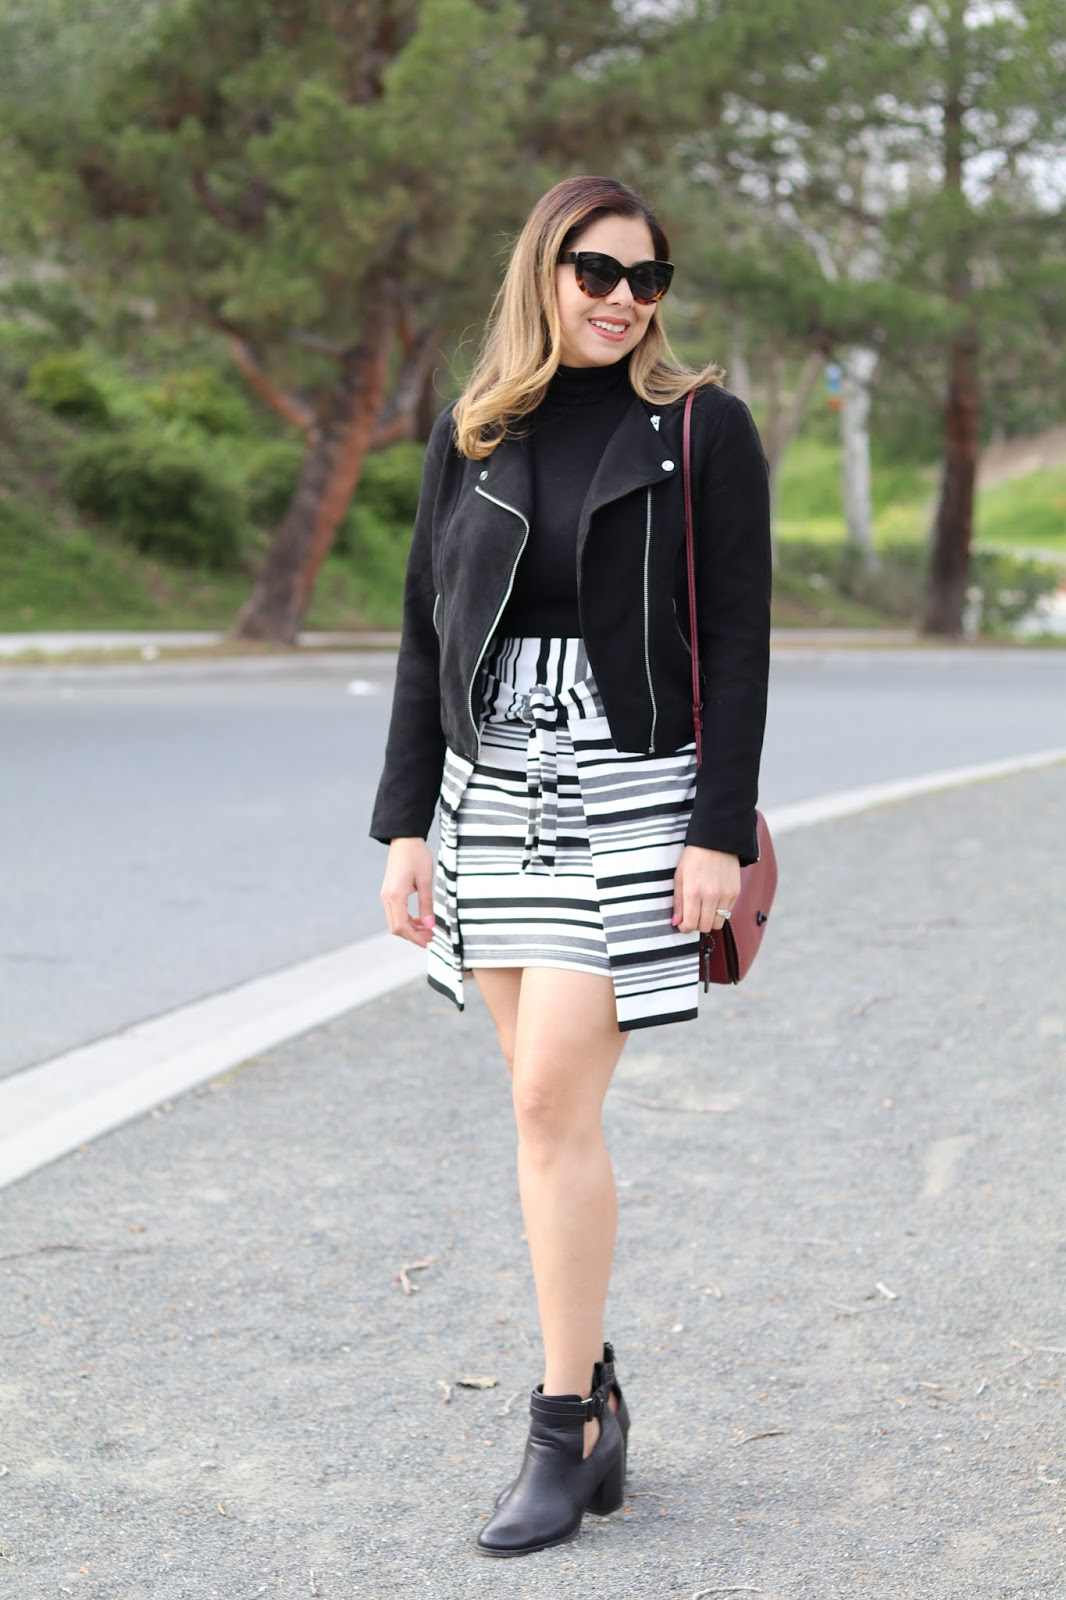 cabi clothing blogger, bloggers in socal, socal fashion blogger